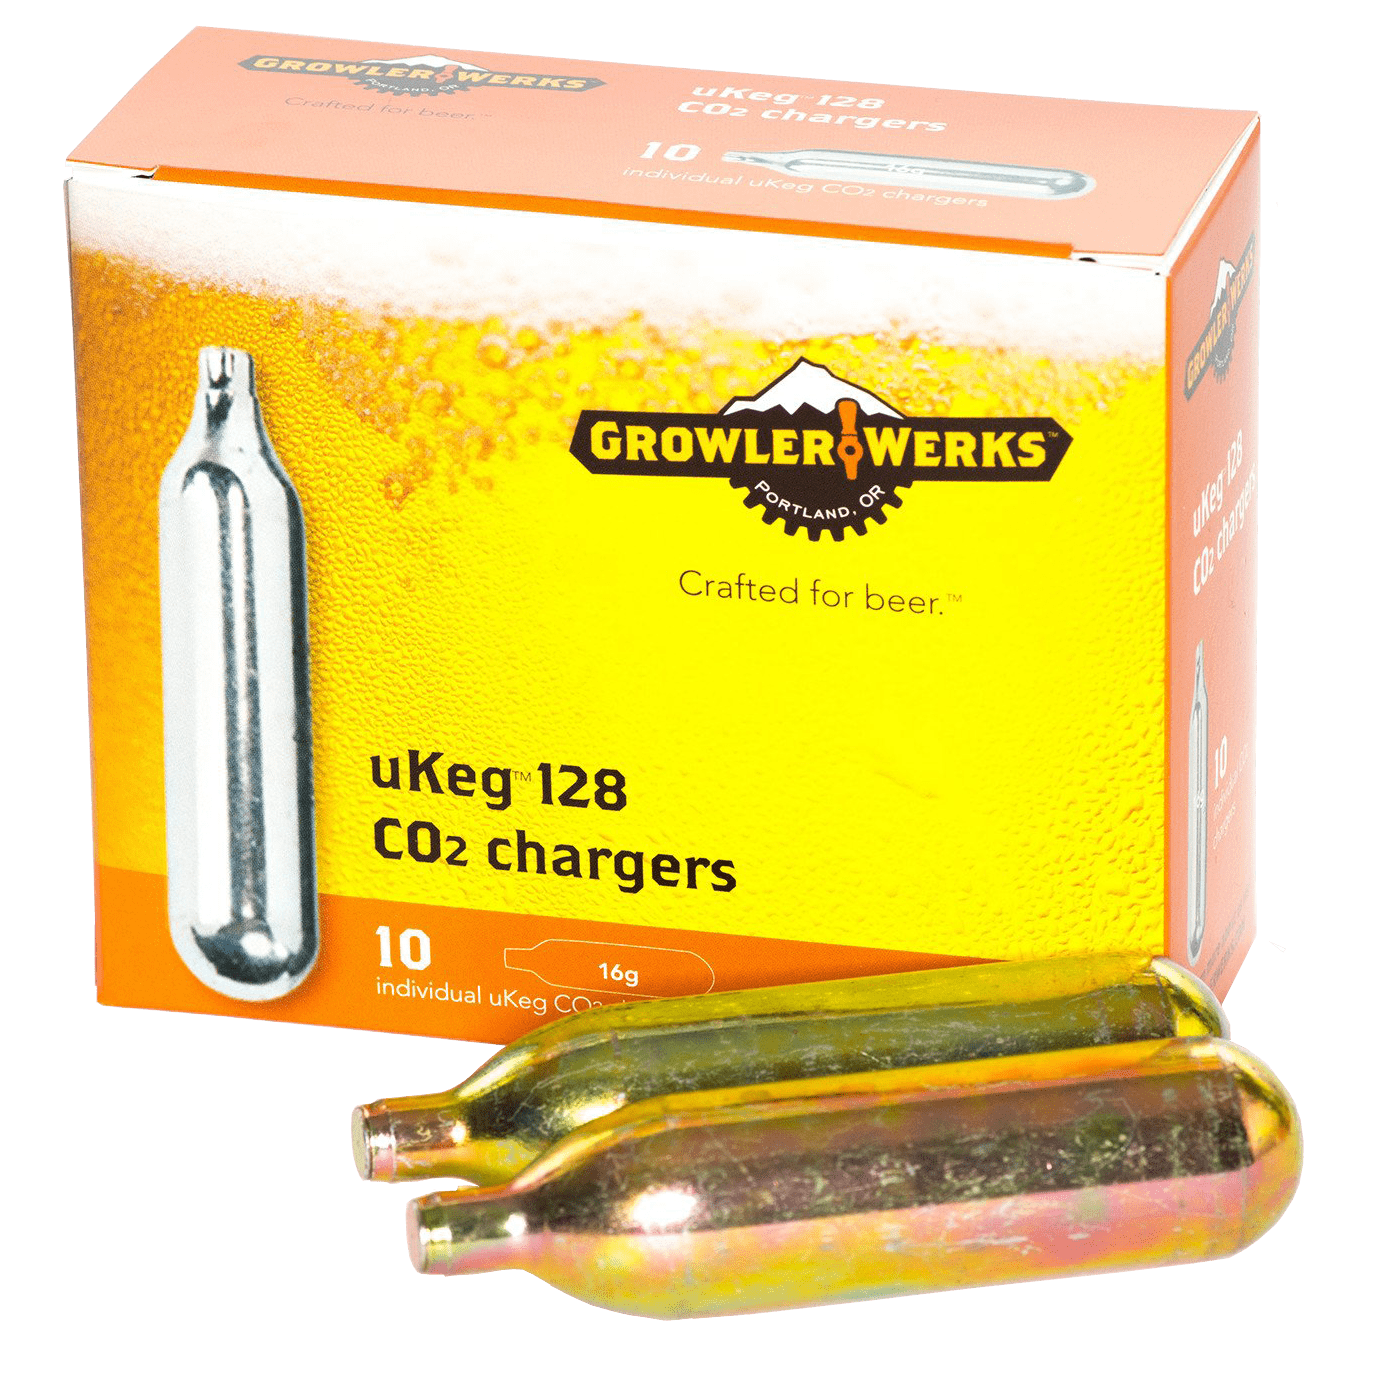 GrowlerWerks 16 Gram Co2 Refill Cartridges